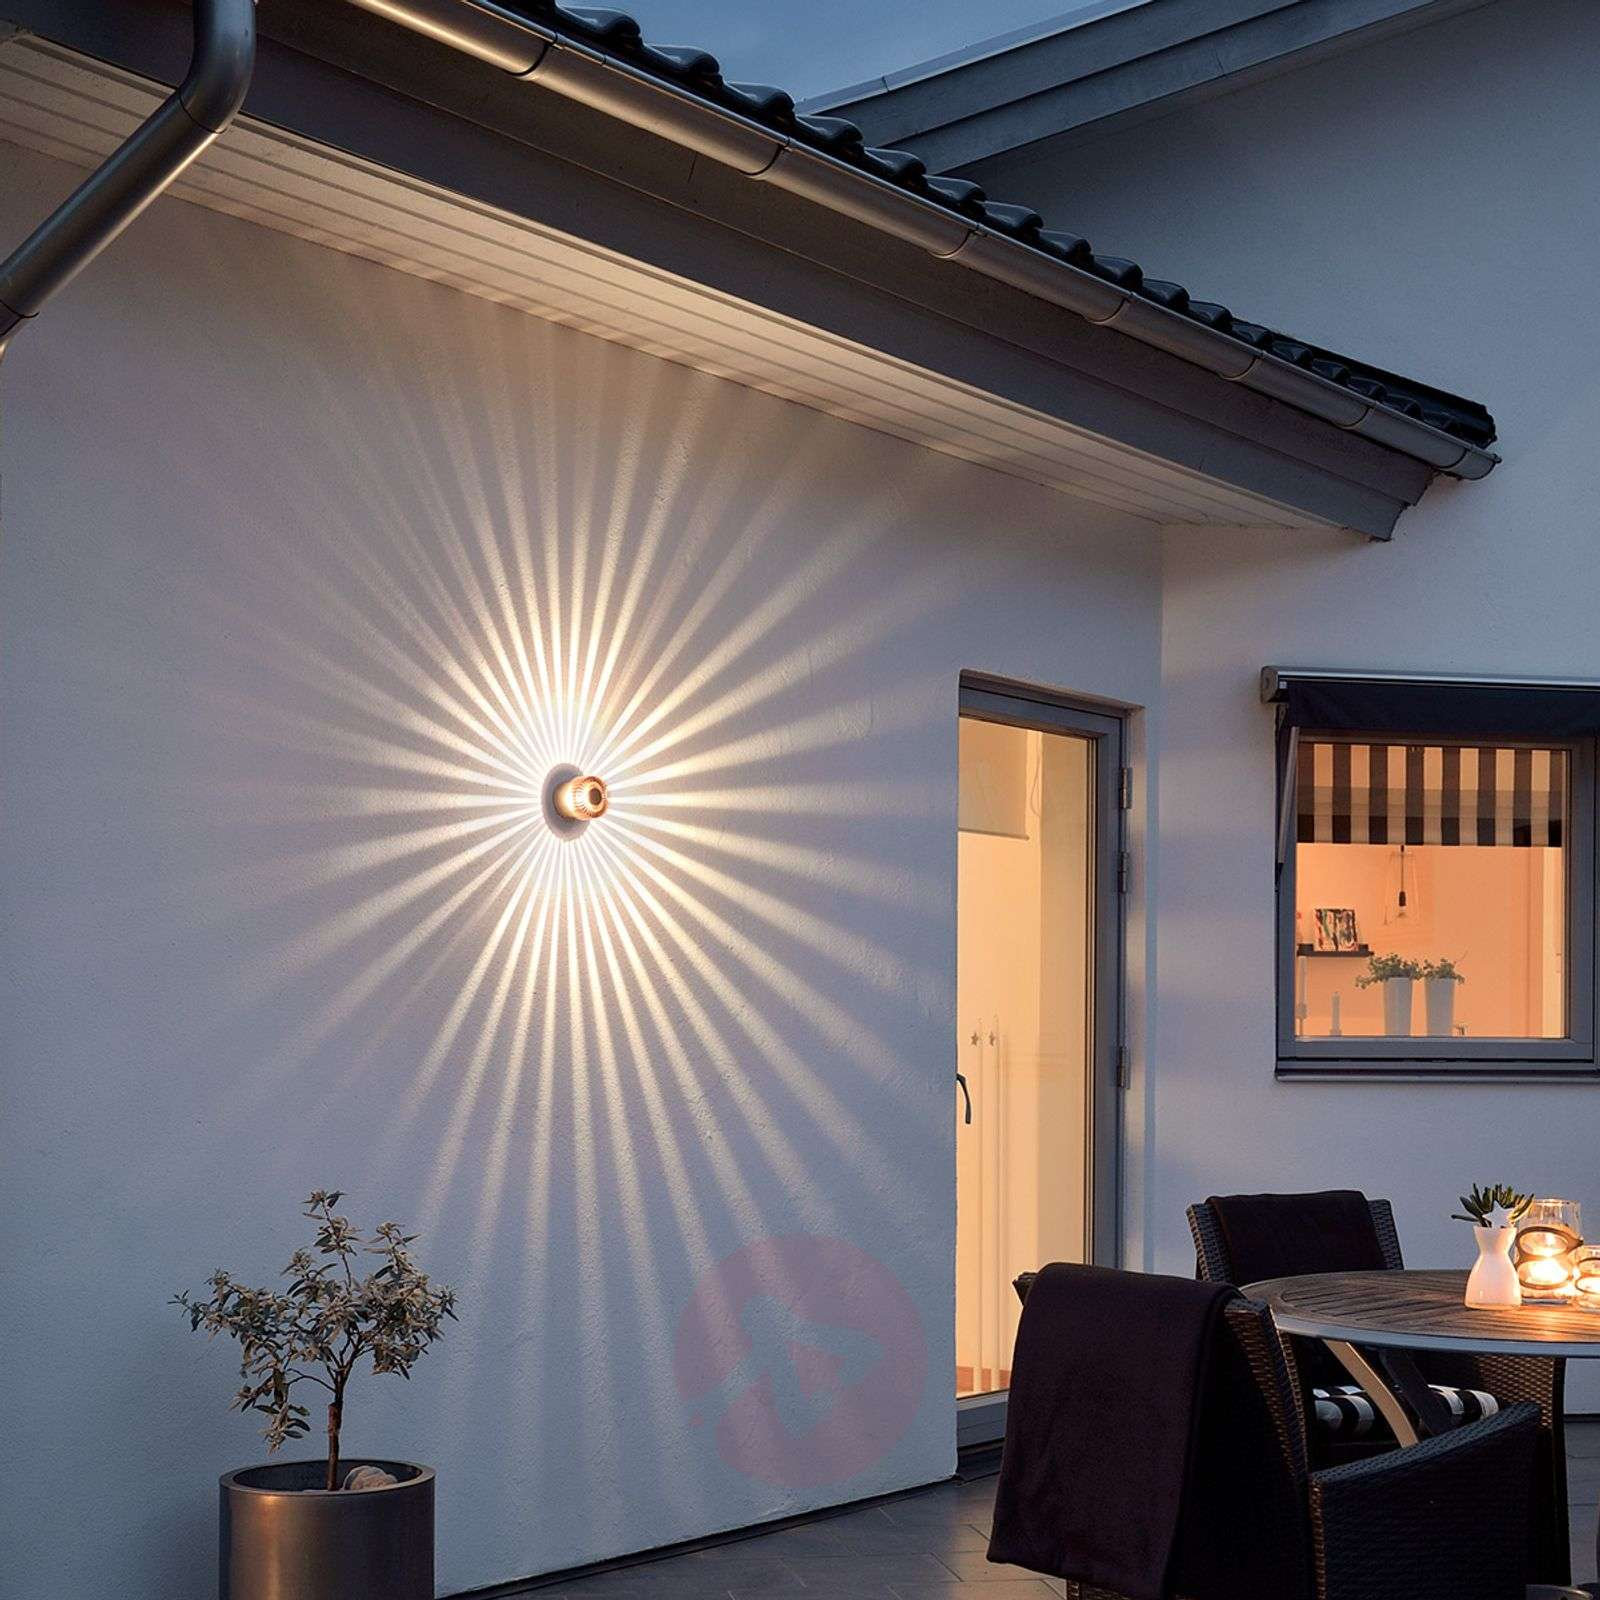 Compra aplique de pared exterior led color cobre monza - Aplique de pared exterior ...